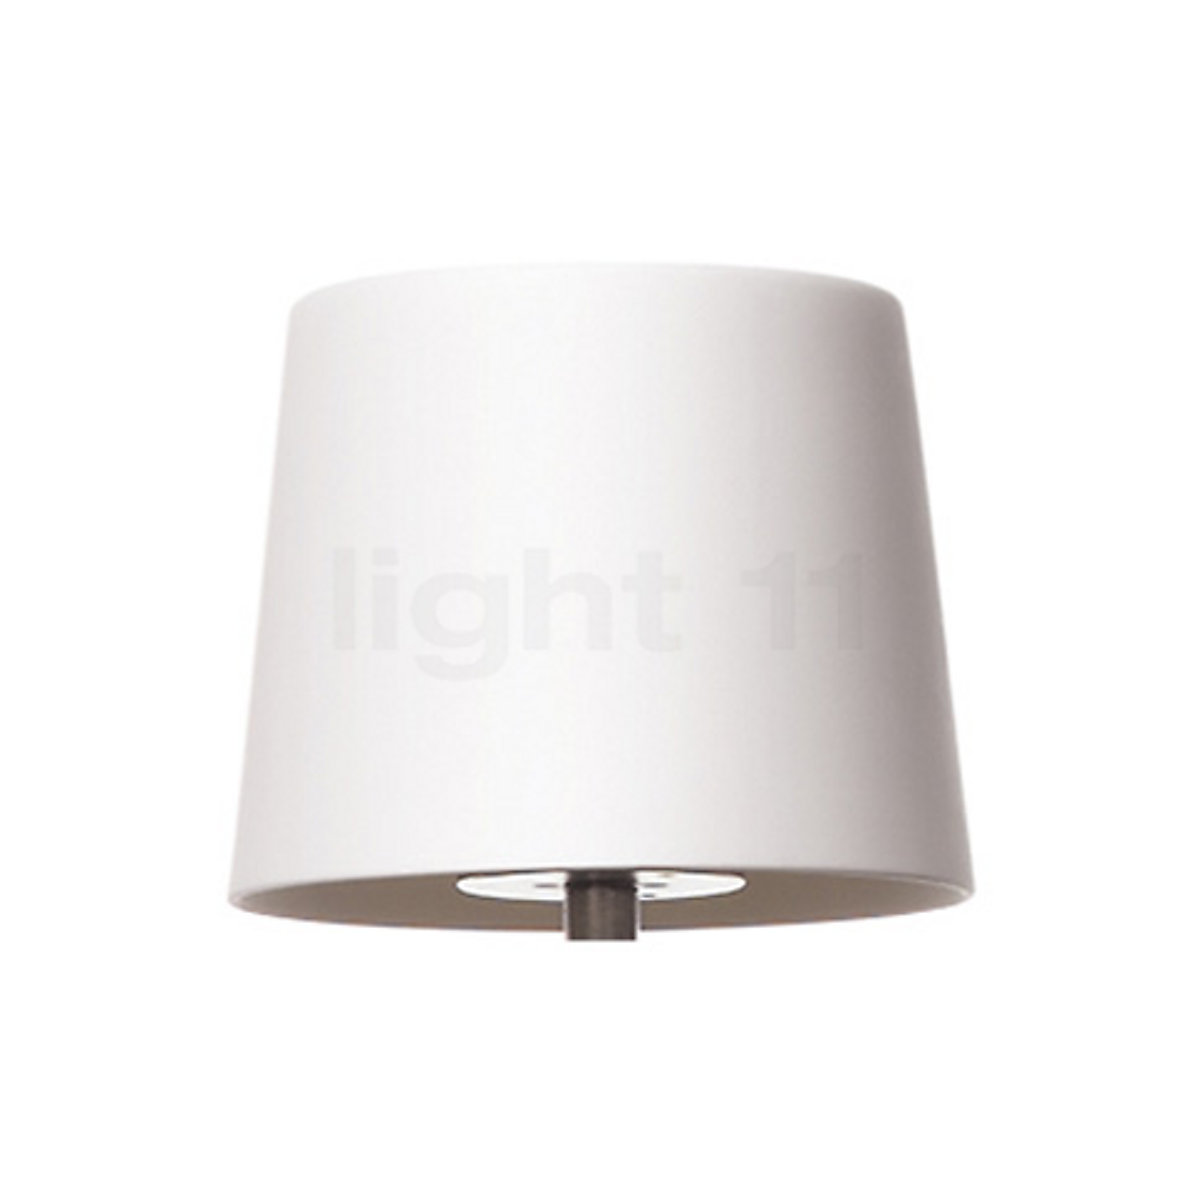 Buy Anta Replacement Shade For Cut Floor Lamp At Light11 Eu